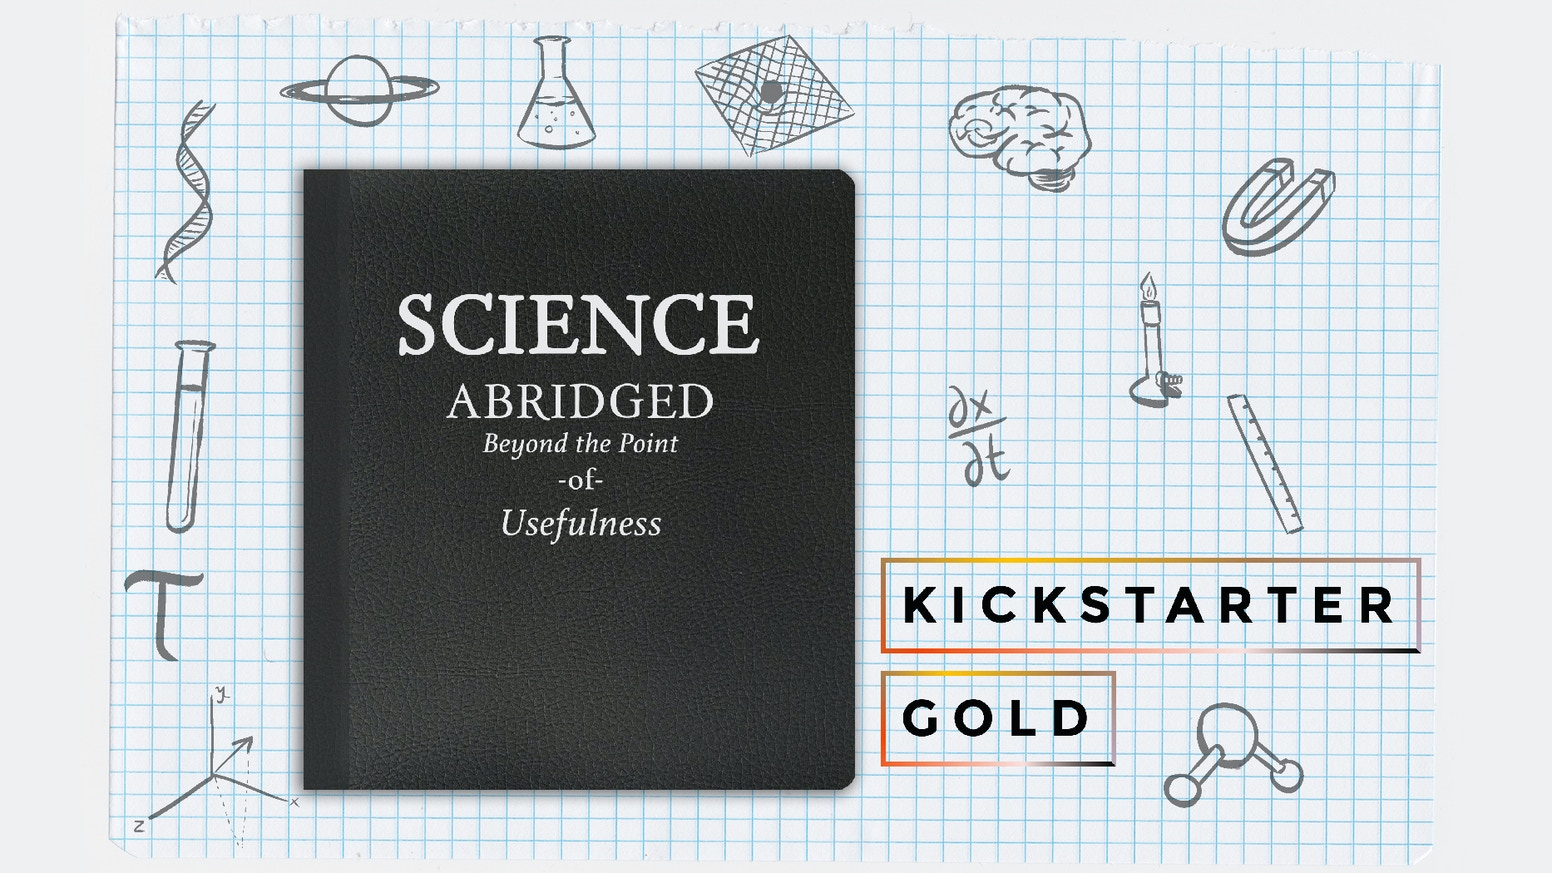 Now, you can have all of science in one handy pocketbook. Useful for education or in case of worldwide apocalypse.